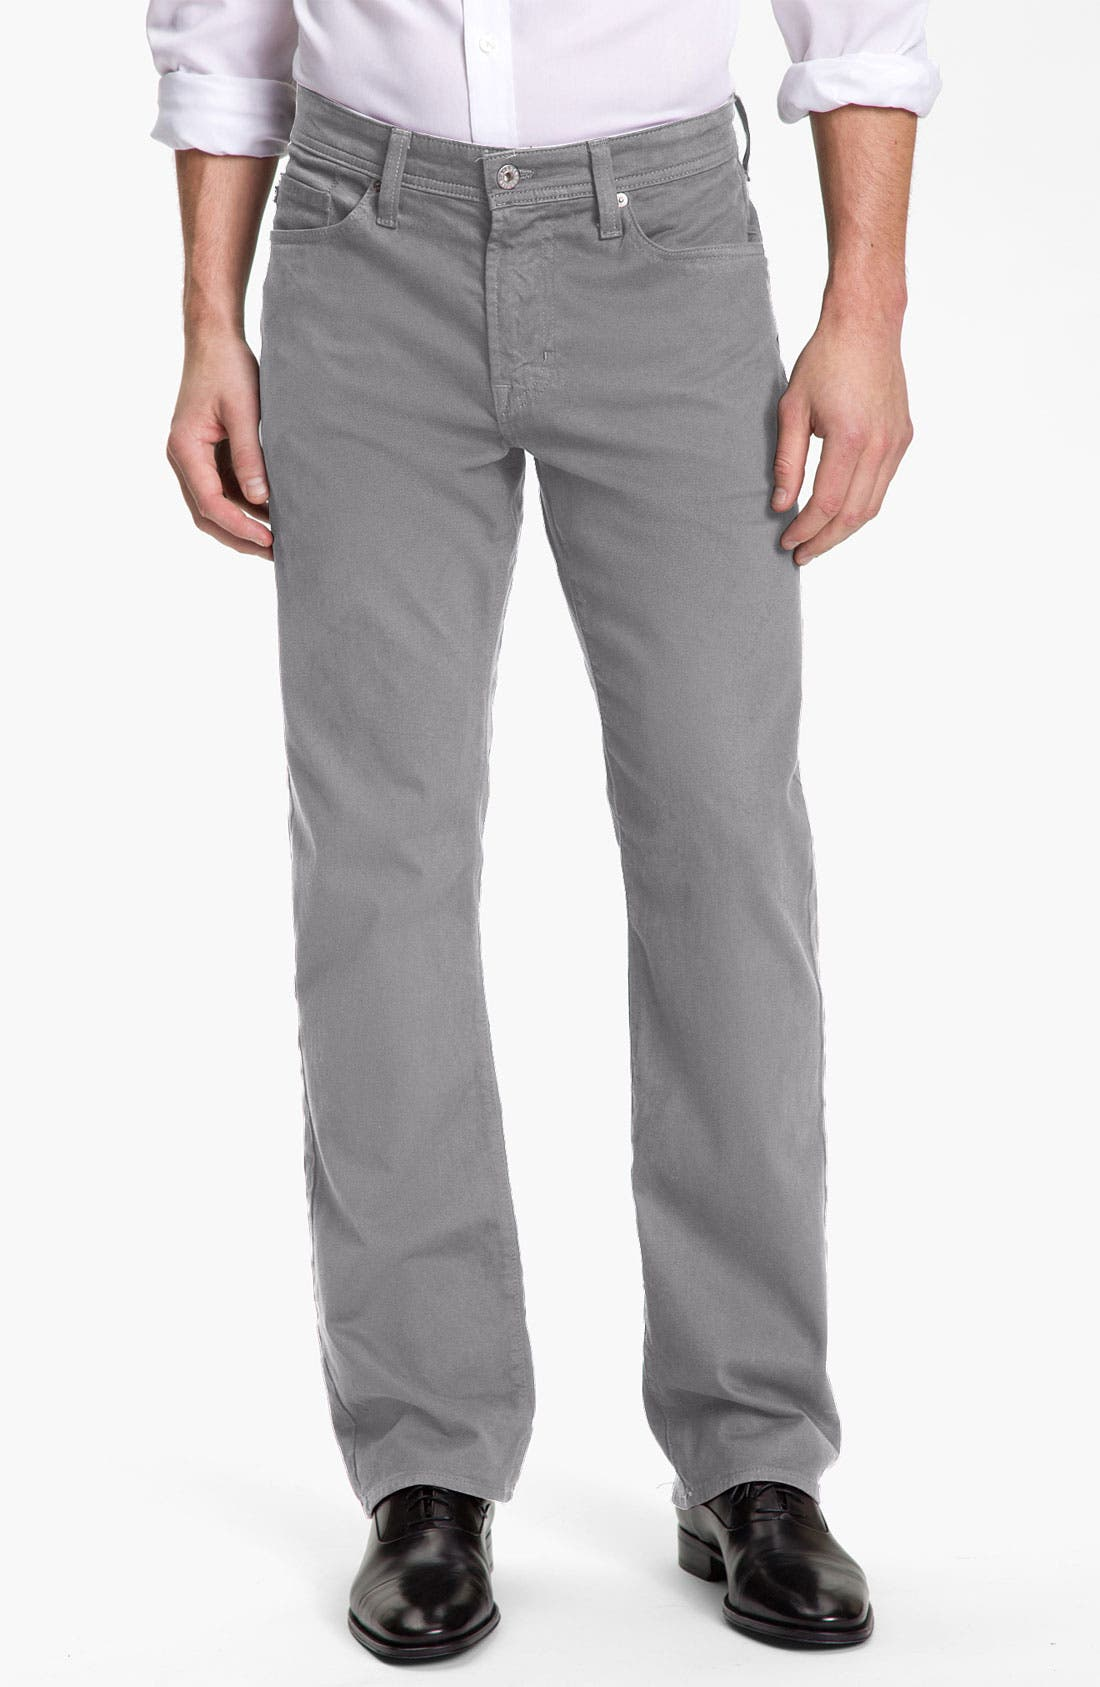 'Protégé SUD' Straight Leg Pants,                         Main,                         color, Stone Grey